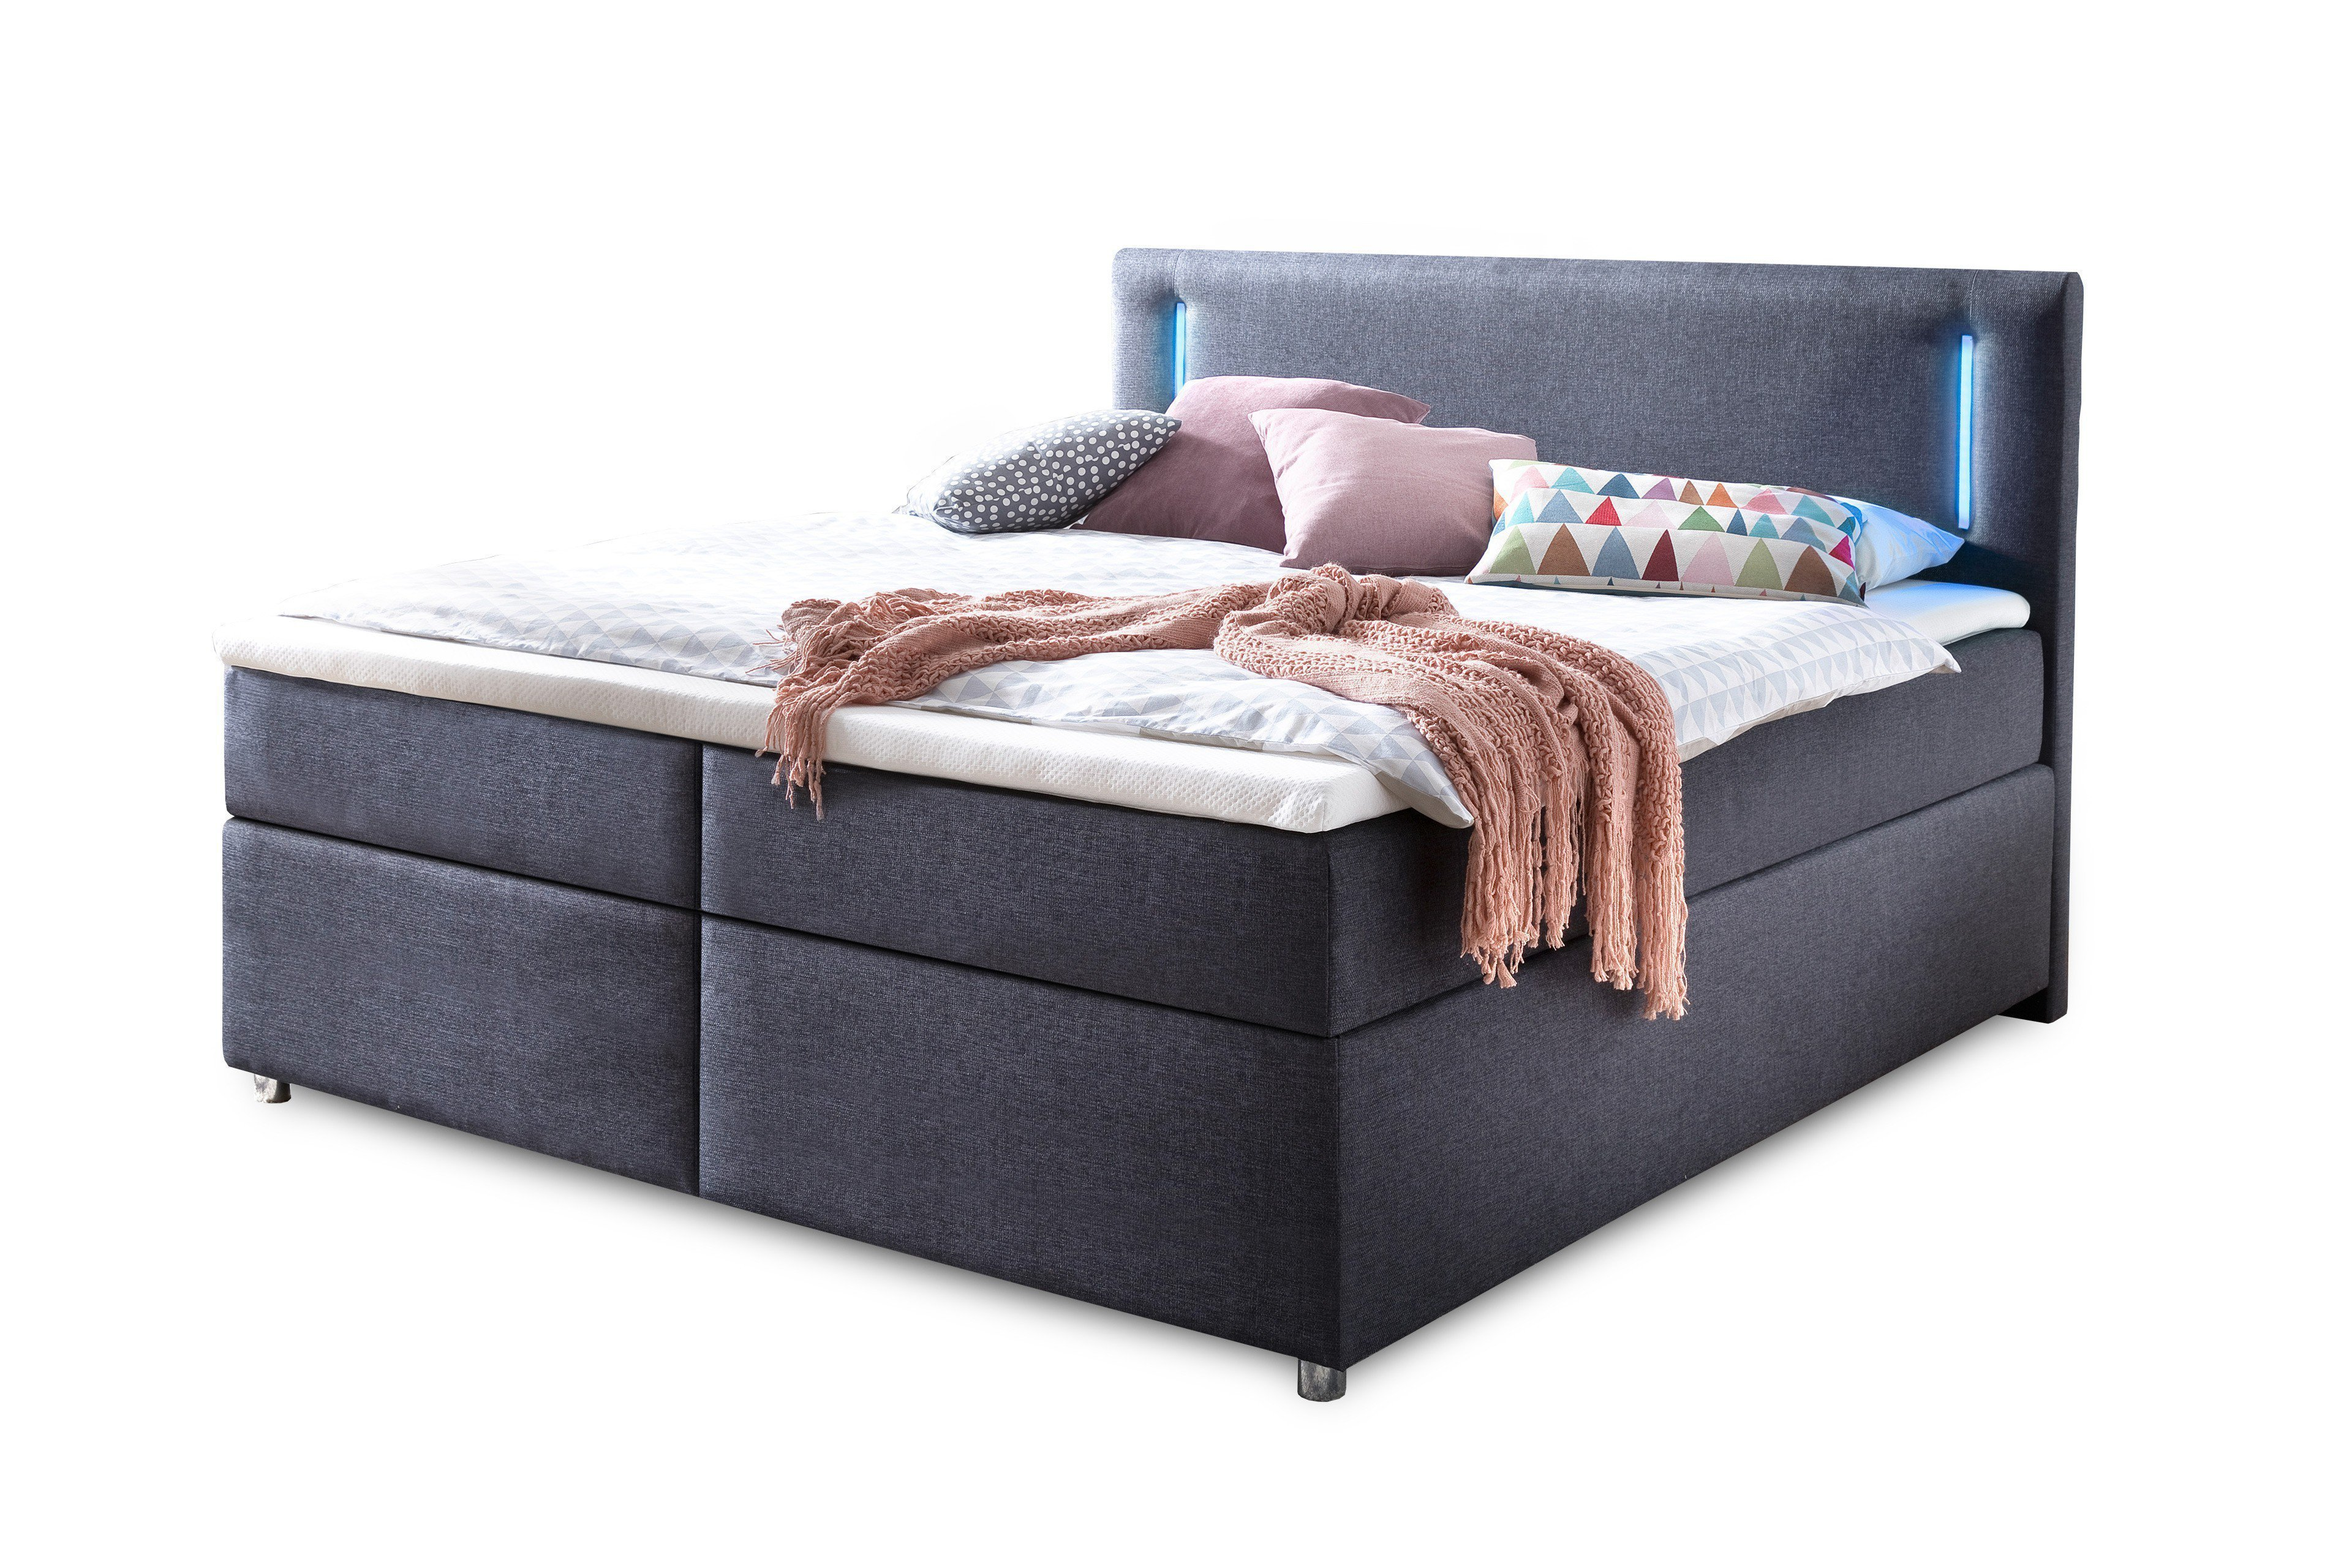 meise boxspringbett lumo in anthrazit m bel letz ihr online shop. Black Bedroom Furniture Sets. Home Design Ideas